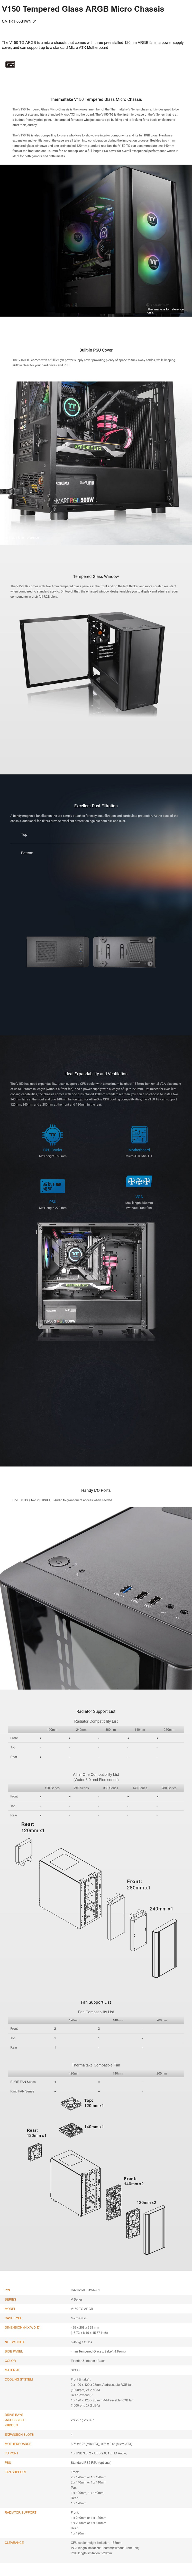 Thermaltake V150 ARGB Tempered Glass Mid-Tower Micro-ATX Case - Black - Desktop Overview 1